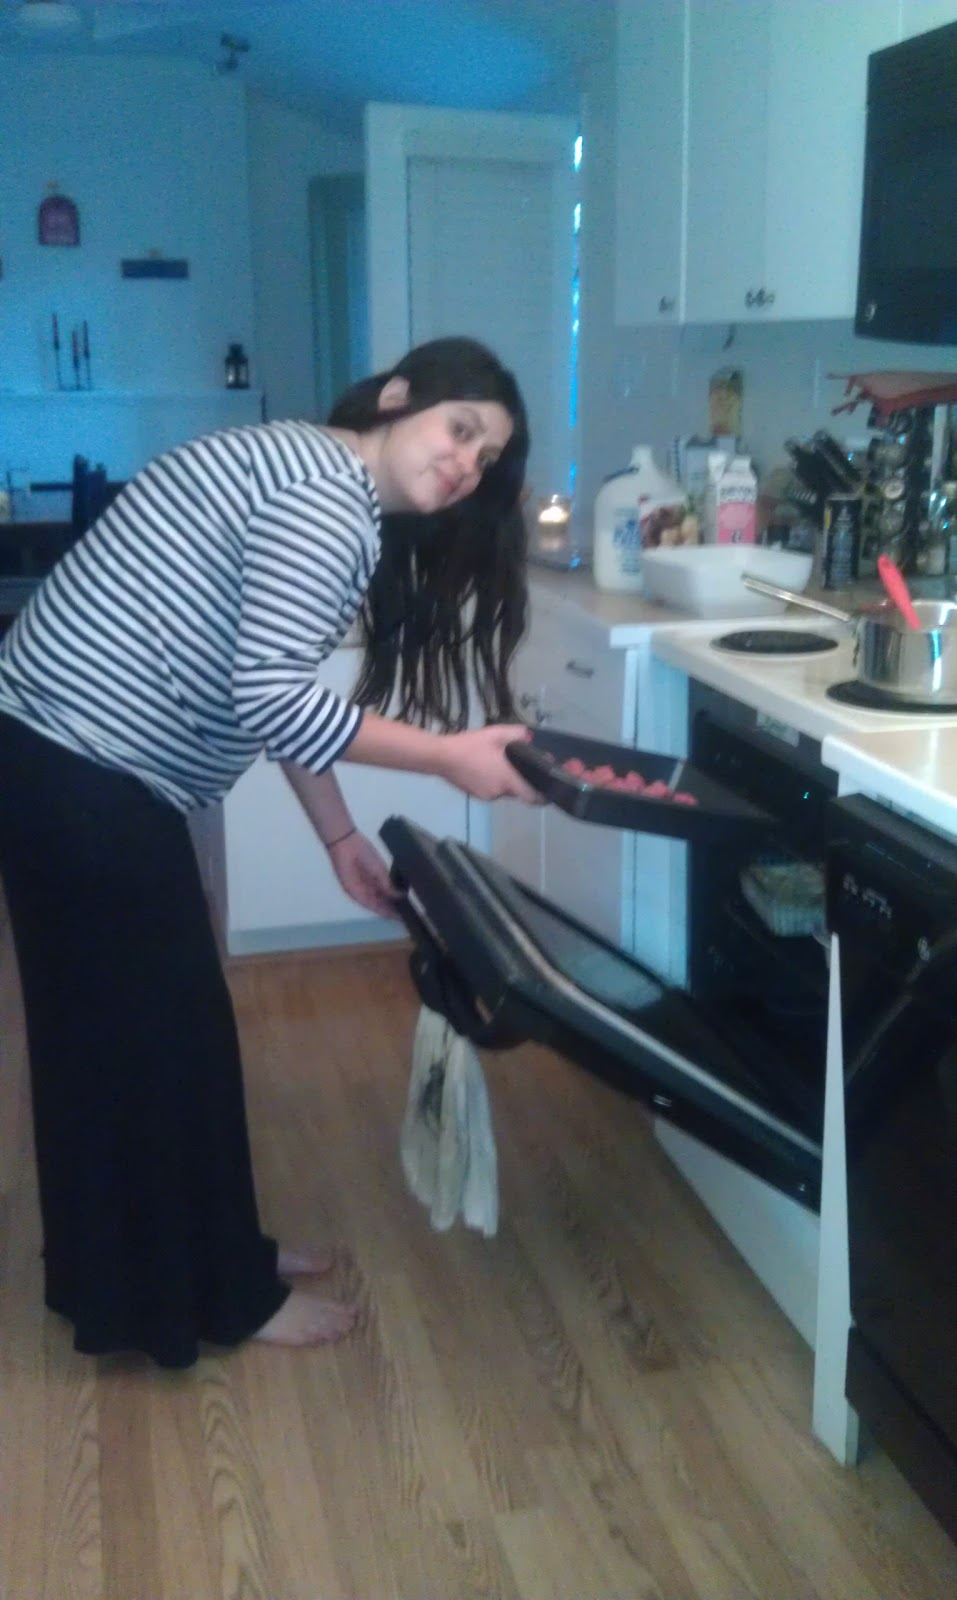 tales of a young mamma pregnant and barefoot in the kitchen